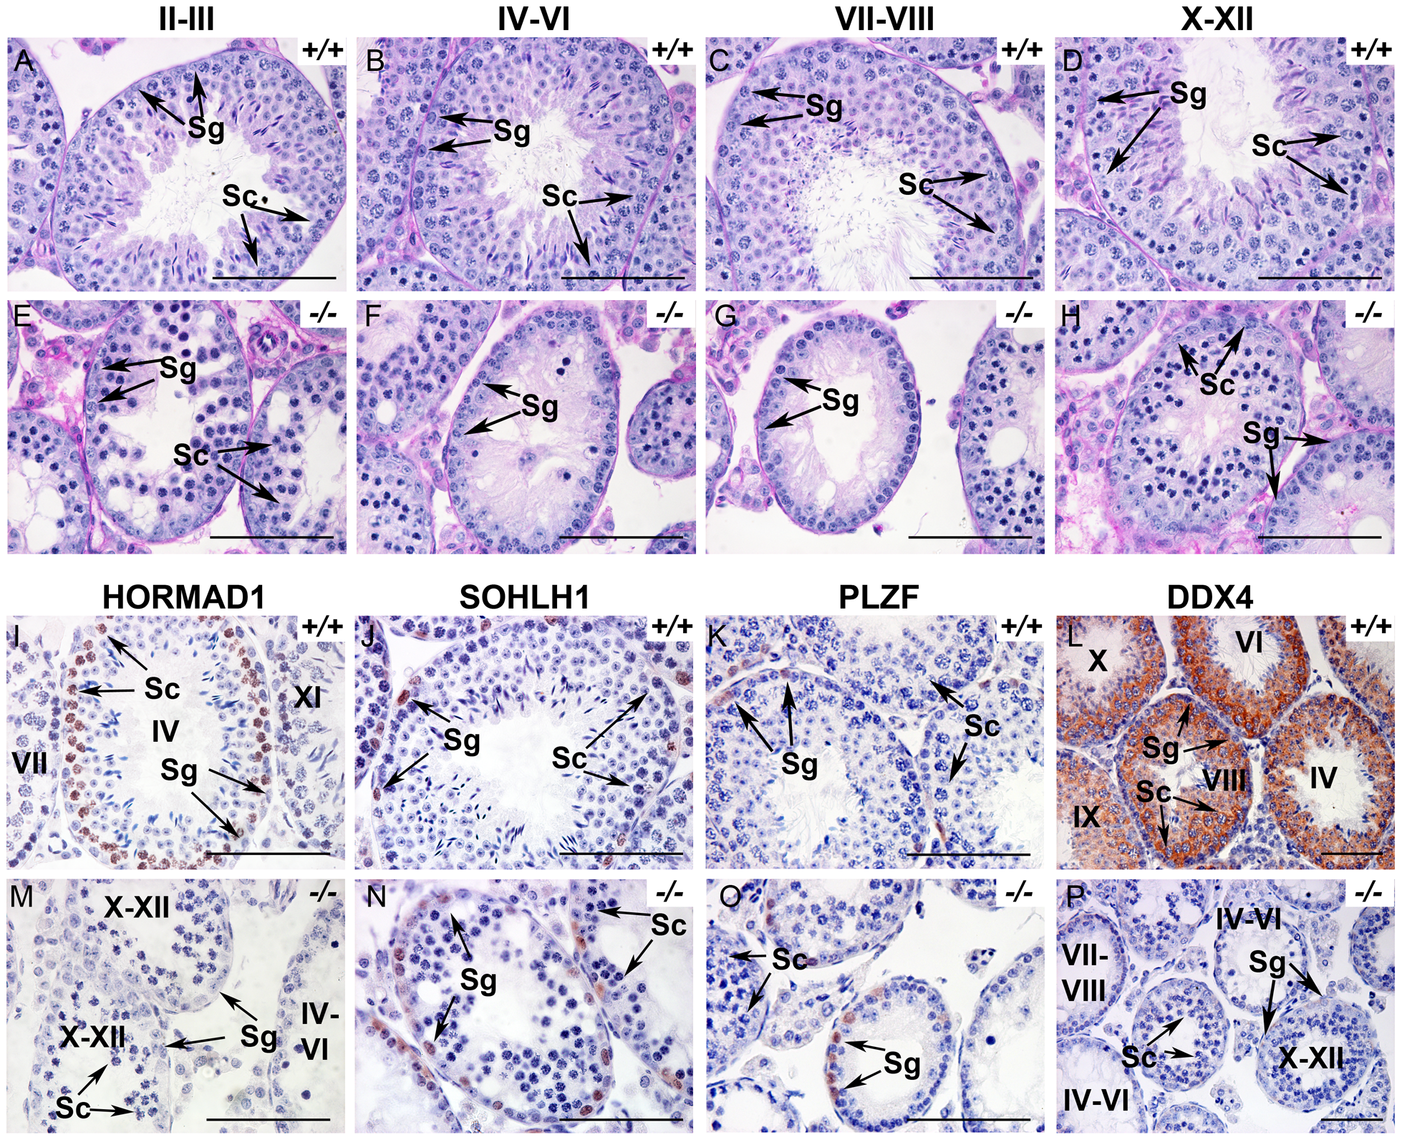 HORMAD1 is required for spermatogenesis.